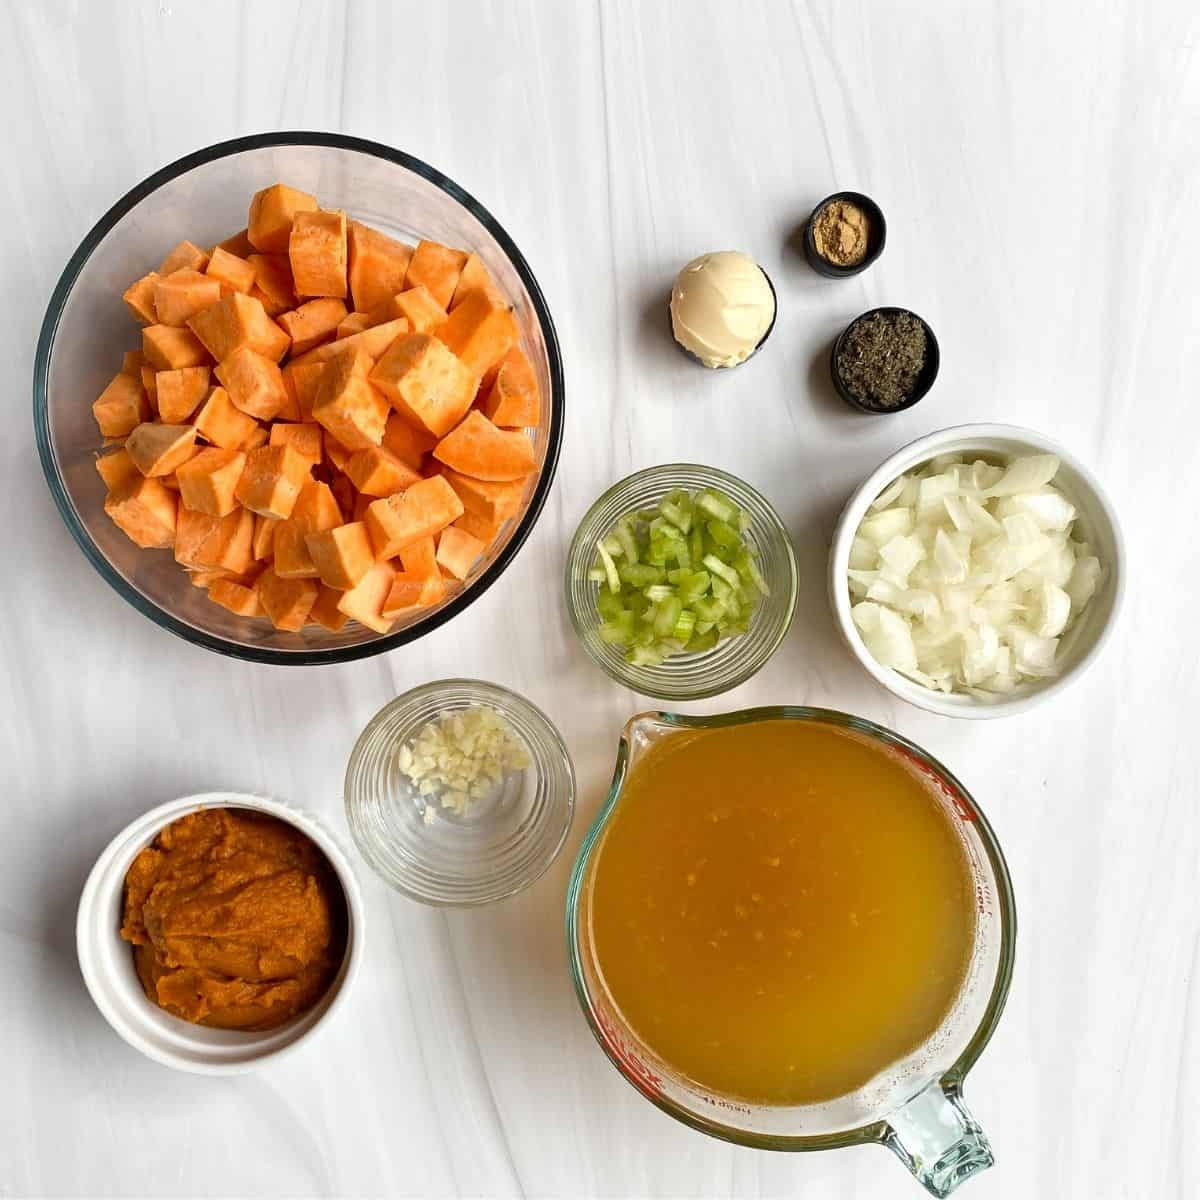 Ingredients for soup: sweet potatoes, pumpkin, celery, ponions, garlic, sage, butter, ginger, broth